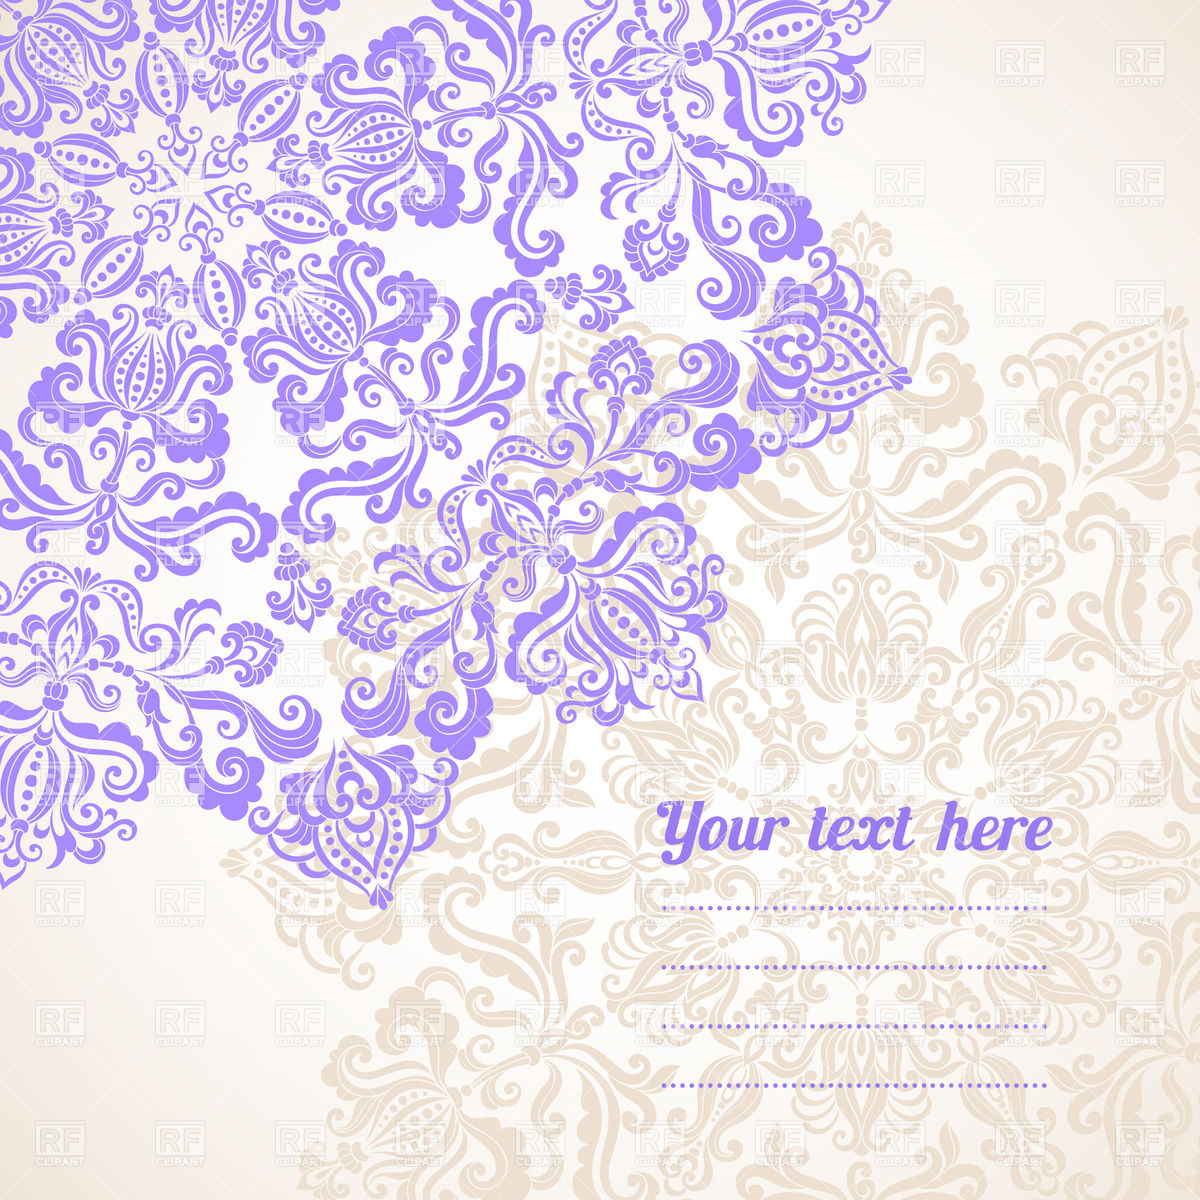 1200x1200 Graphic Floral Ornaments And Place For Text Vector Image Vector